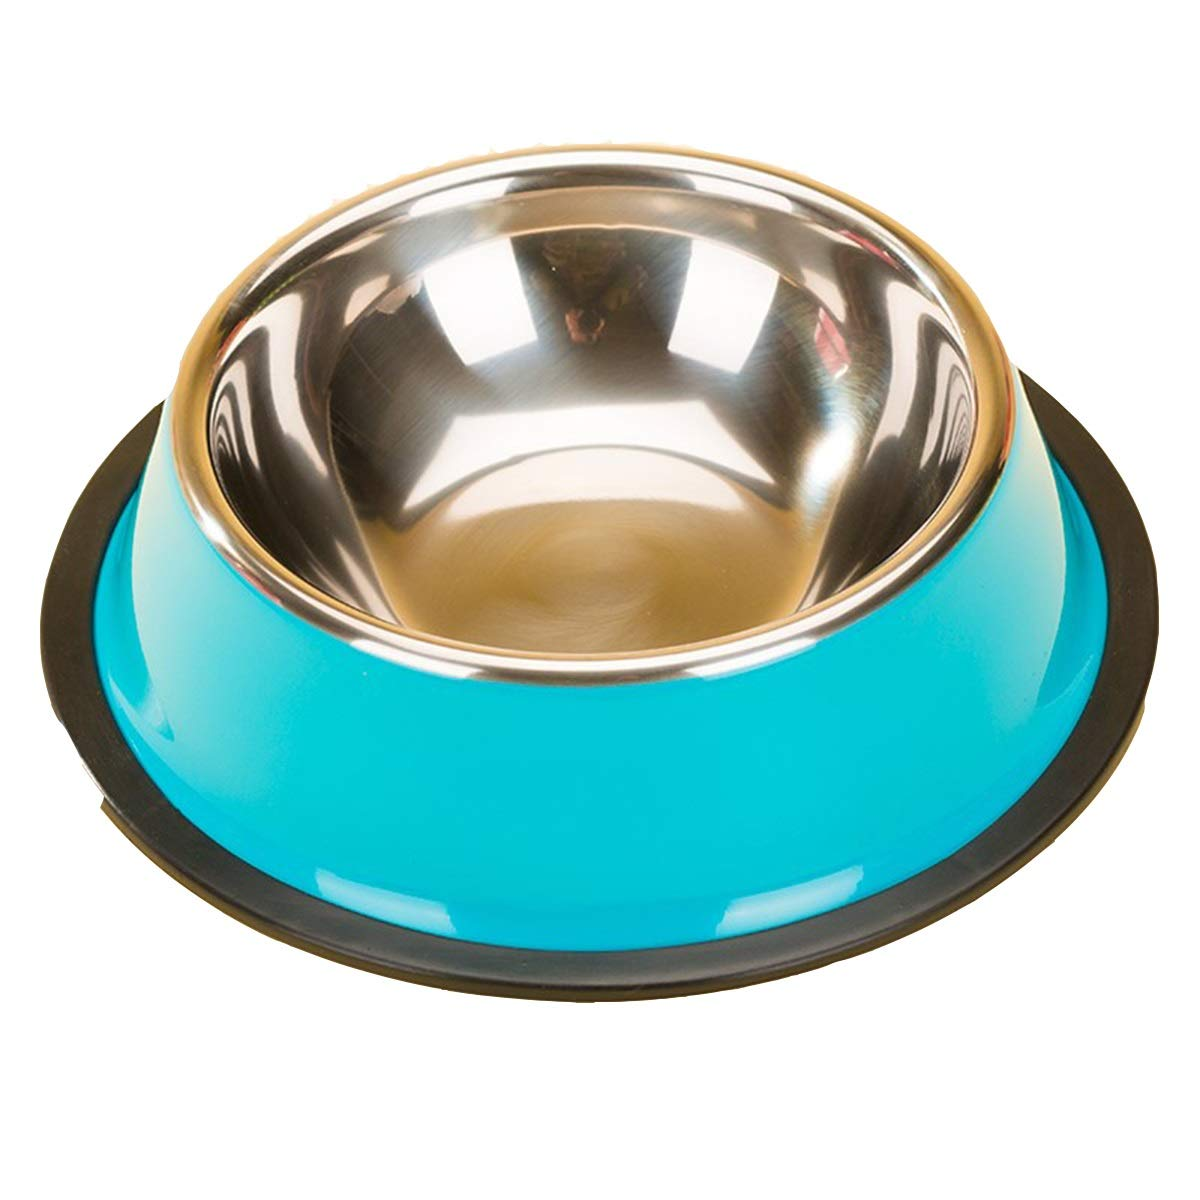 bluee S bluee S XIAN Painted Stainless Steel Non Spil Bowl, Pet Dog Supplies, Puppy Pots, Dog Bowl Single Bowl, bluee Painted Stainless Steel Pet Bowl, Solid color Easy to Clean Non-Skid Bowls for Dogs